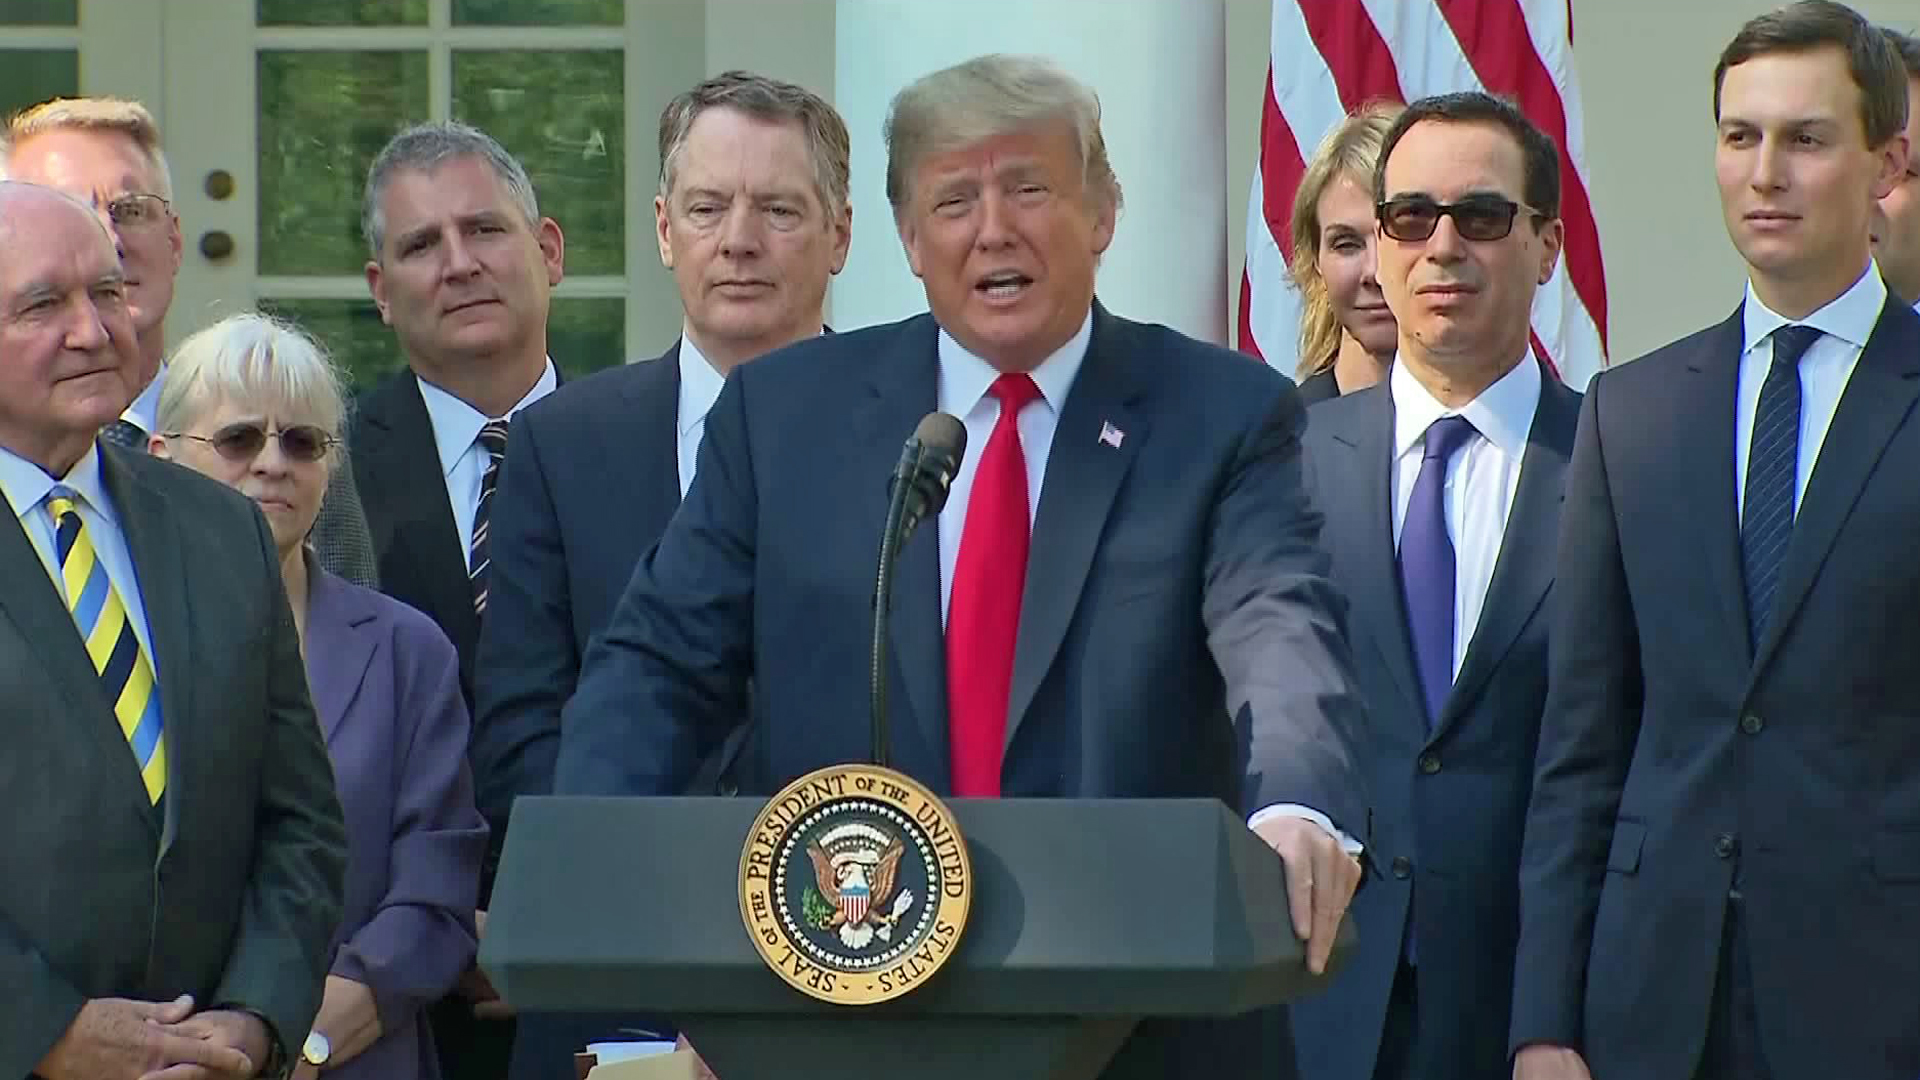 Donald Trump discusses a newly negotiated trade agreement with Canada and Mexico during a news conference at the White House on Oct. 1, 2018. (Credit: CNN)